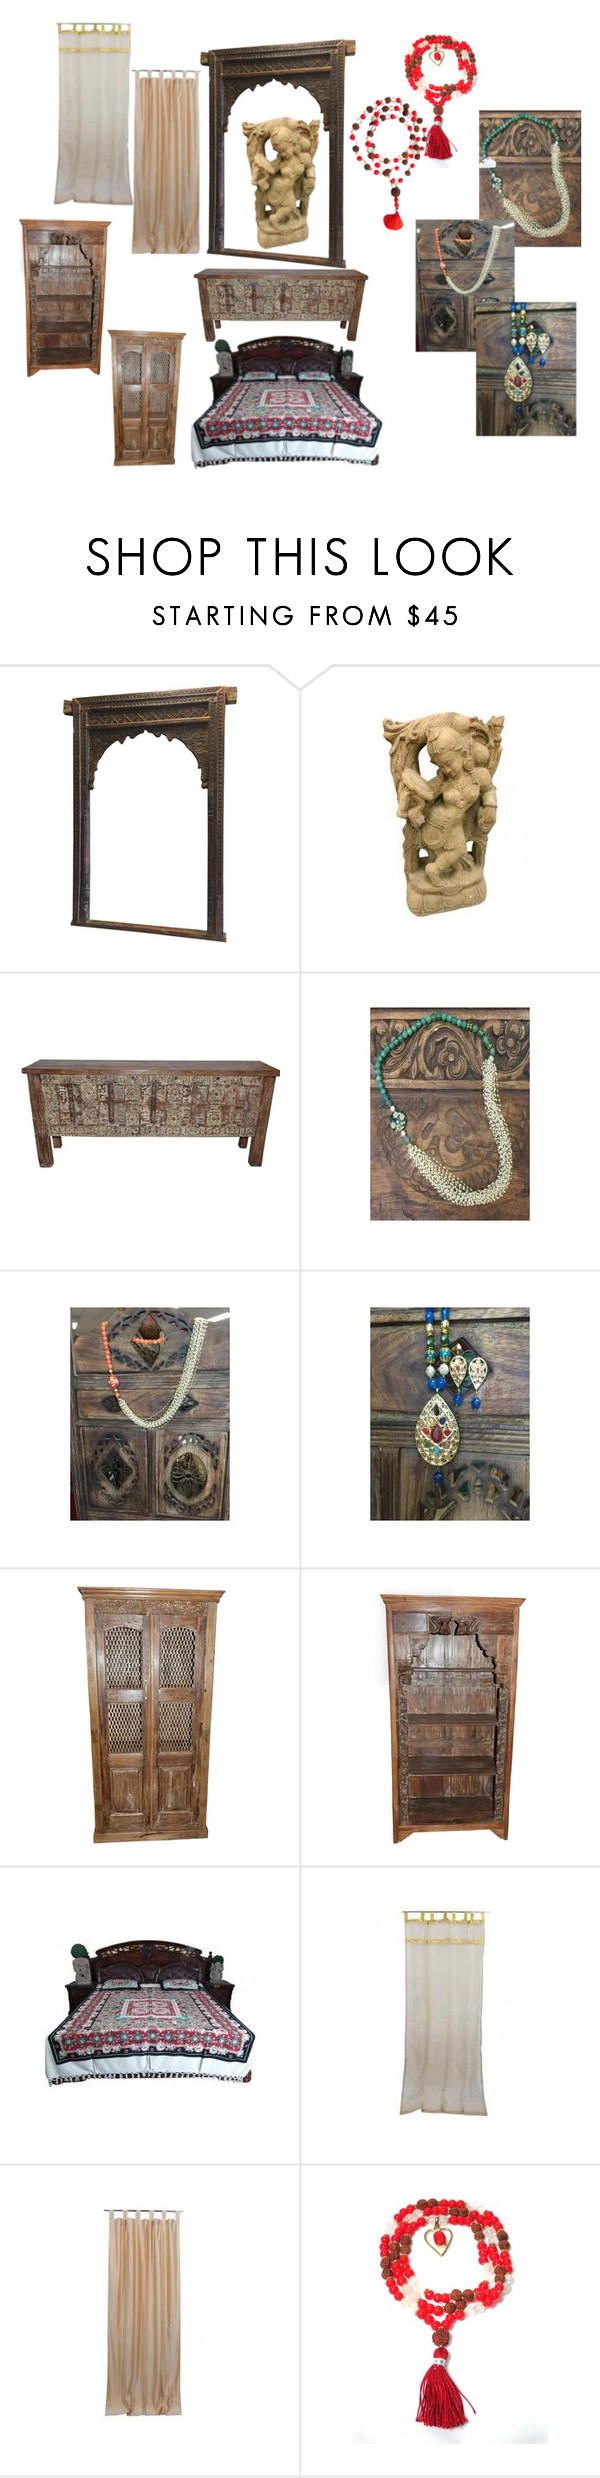 """bohemian decor"" by era-chandok ❤ liked on Polyvore featuring interior, interiors, interior design, home, home decor, interior decorating and Apsara"